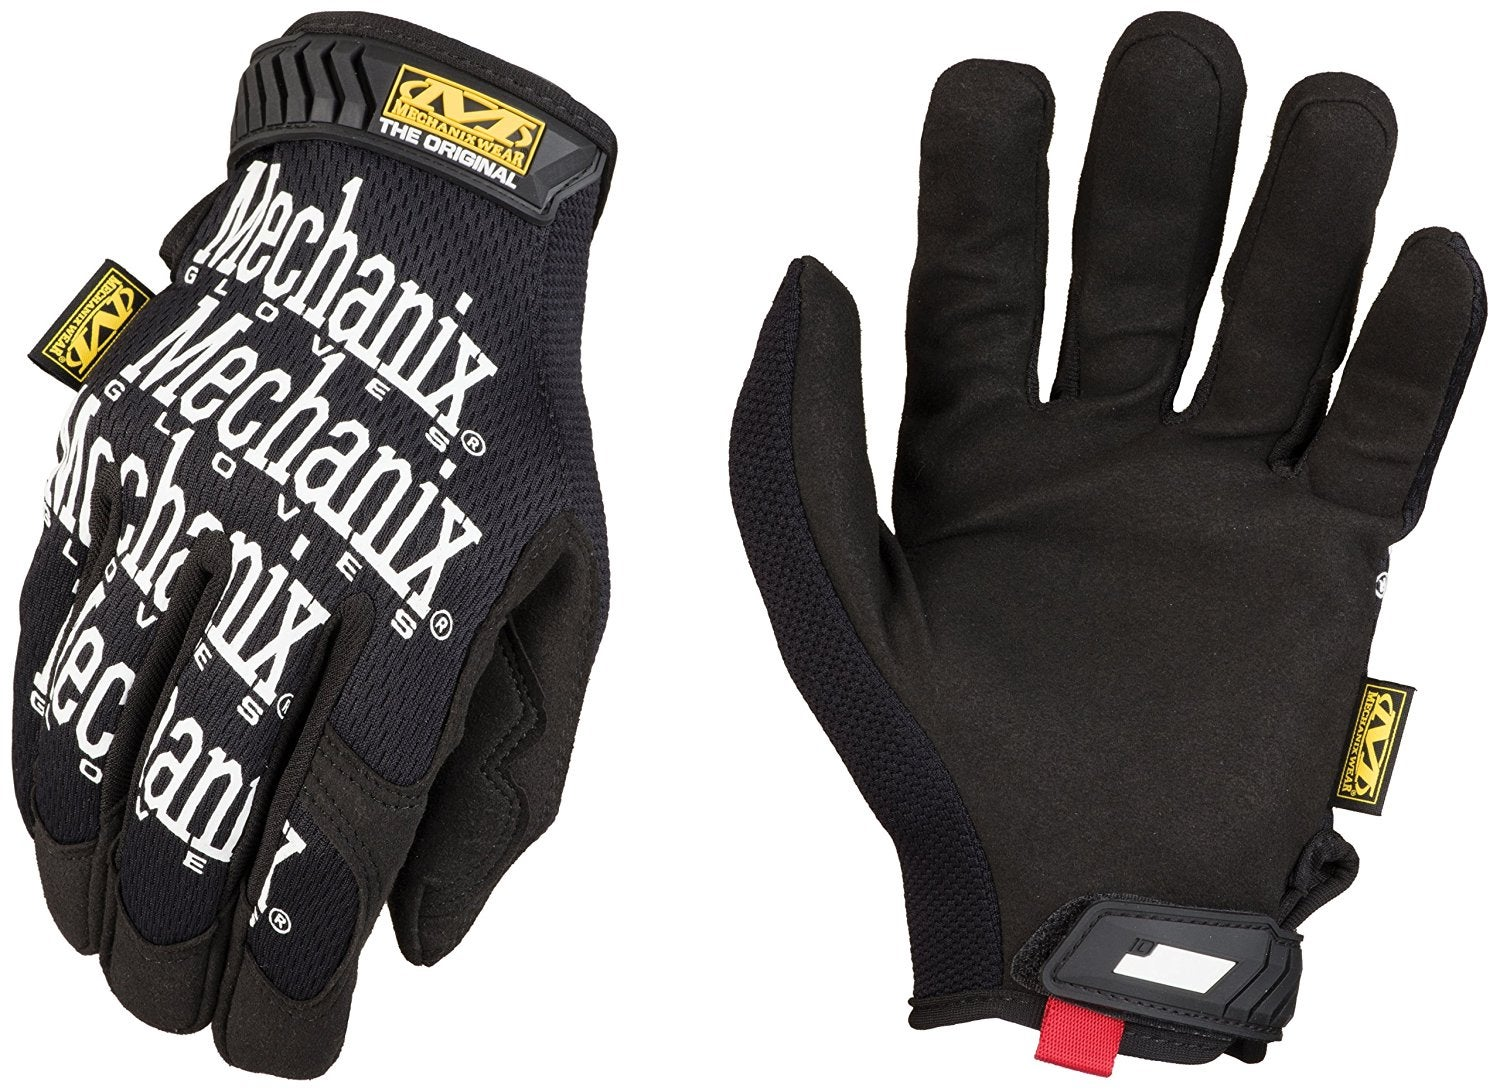 Mechanix gloves are a great, affordable option for shooting gloves that offer a great balance of dexterity and protection.